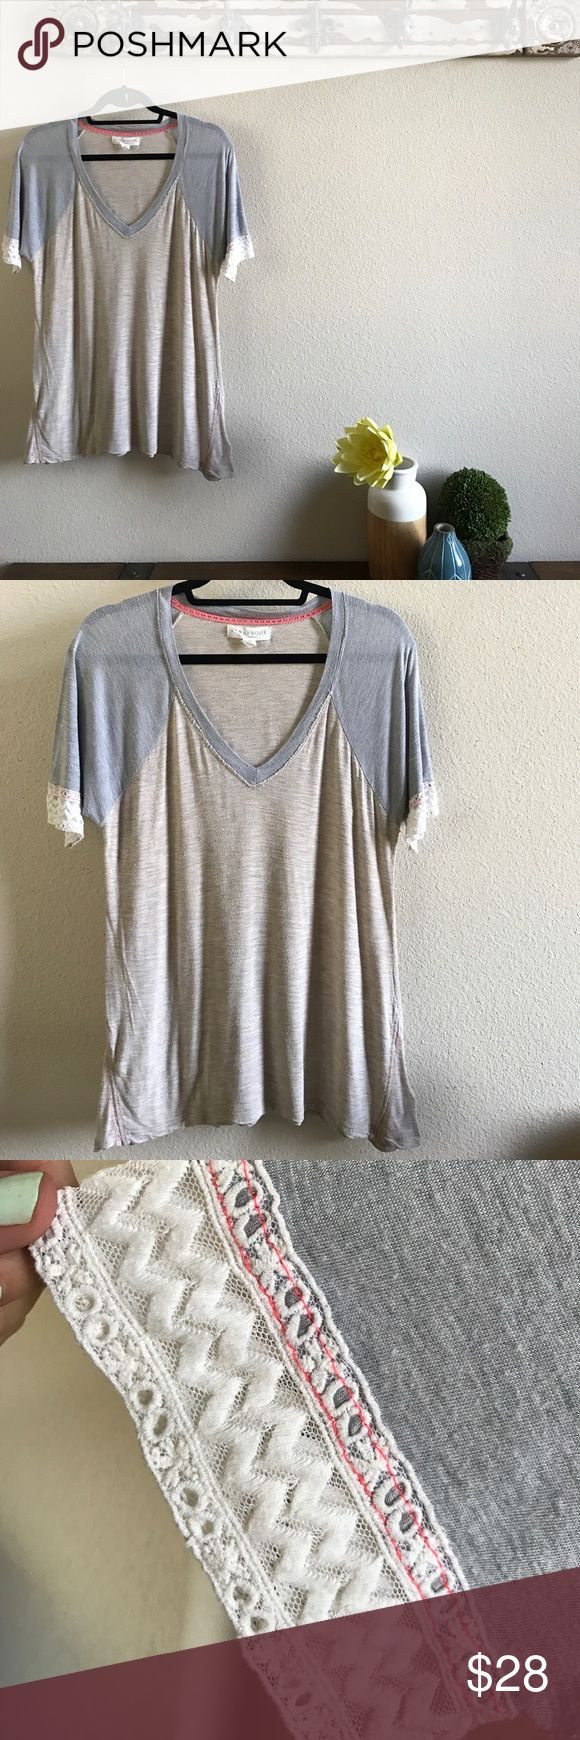 SCRAPBOOK Lace Sleeved V Tee The whole point of the brand is to look shabby chic so with that considered it's in lovely condition. No stains or shrinking of any kind. I now offer 20% off any 2! Anthropologie Tops Tees - Short Sleeve